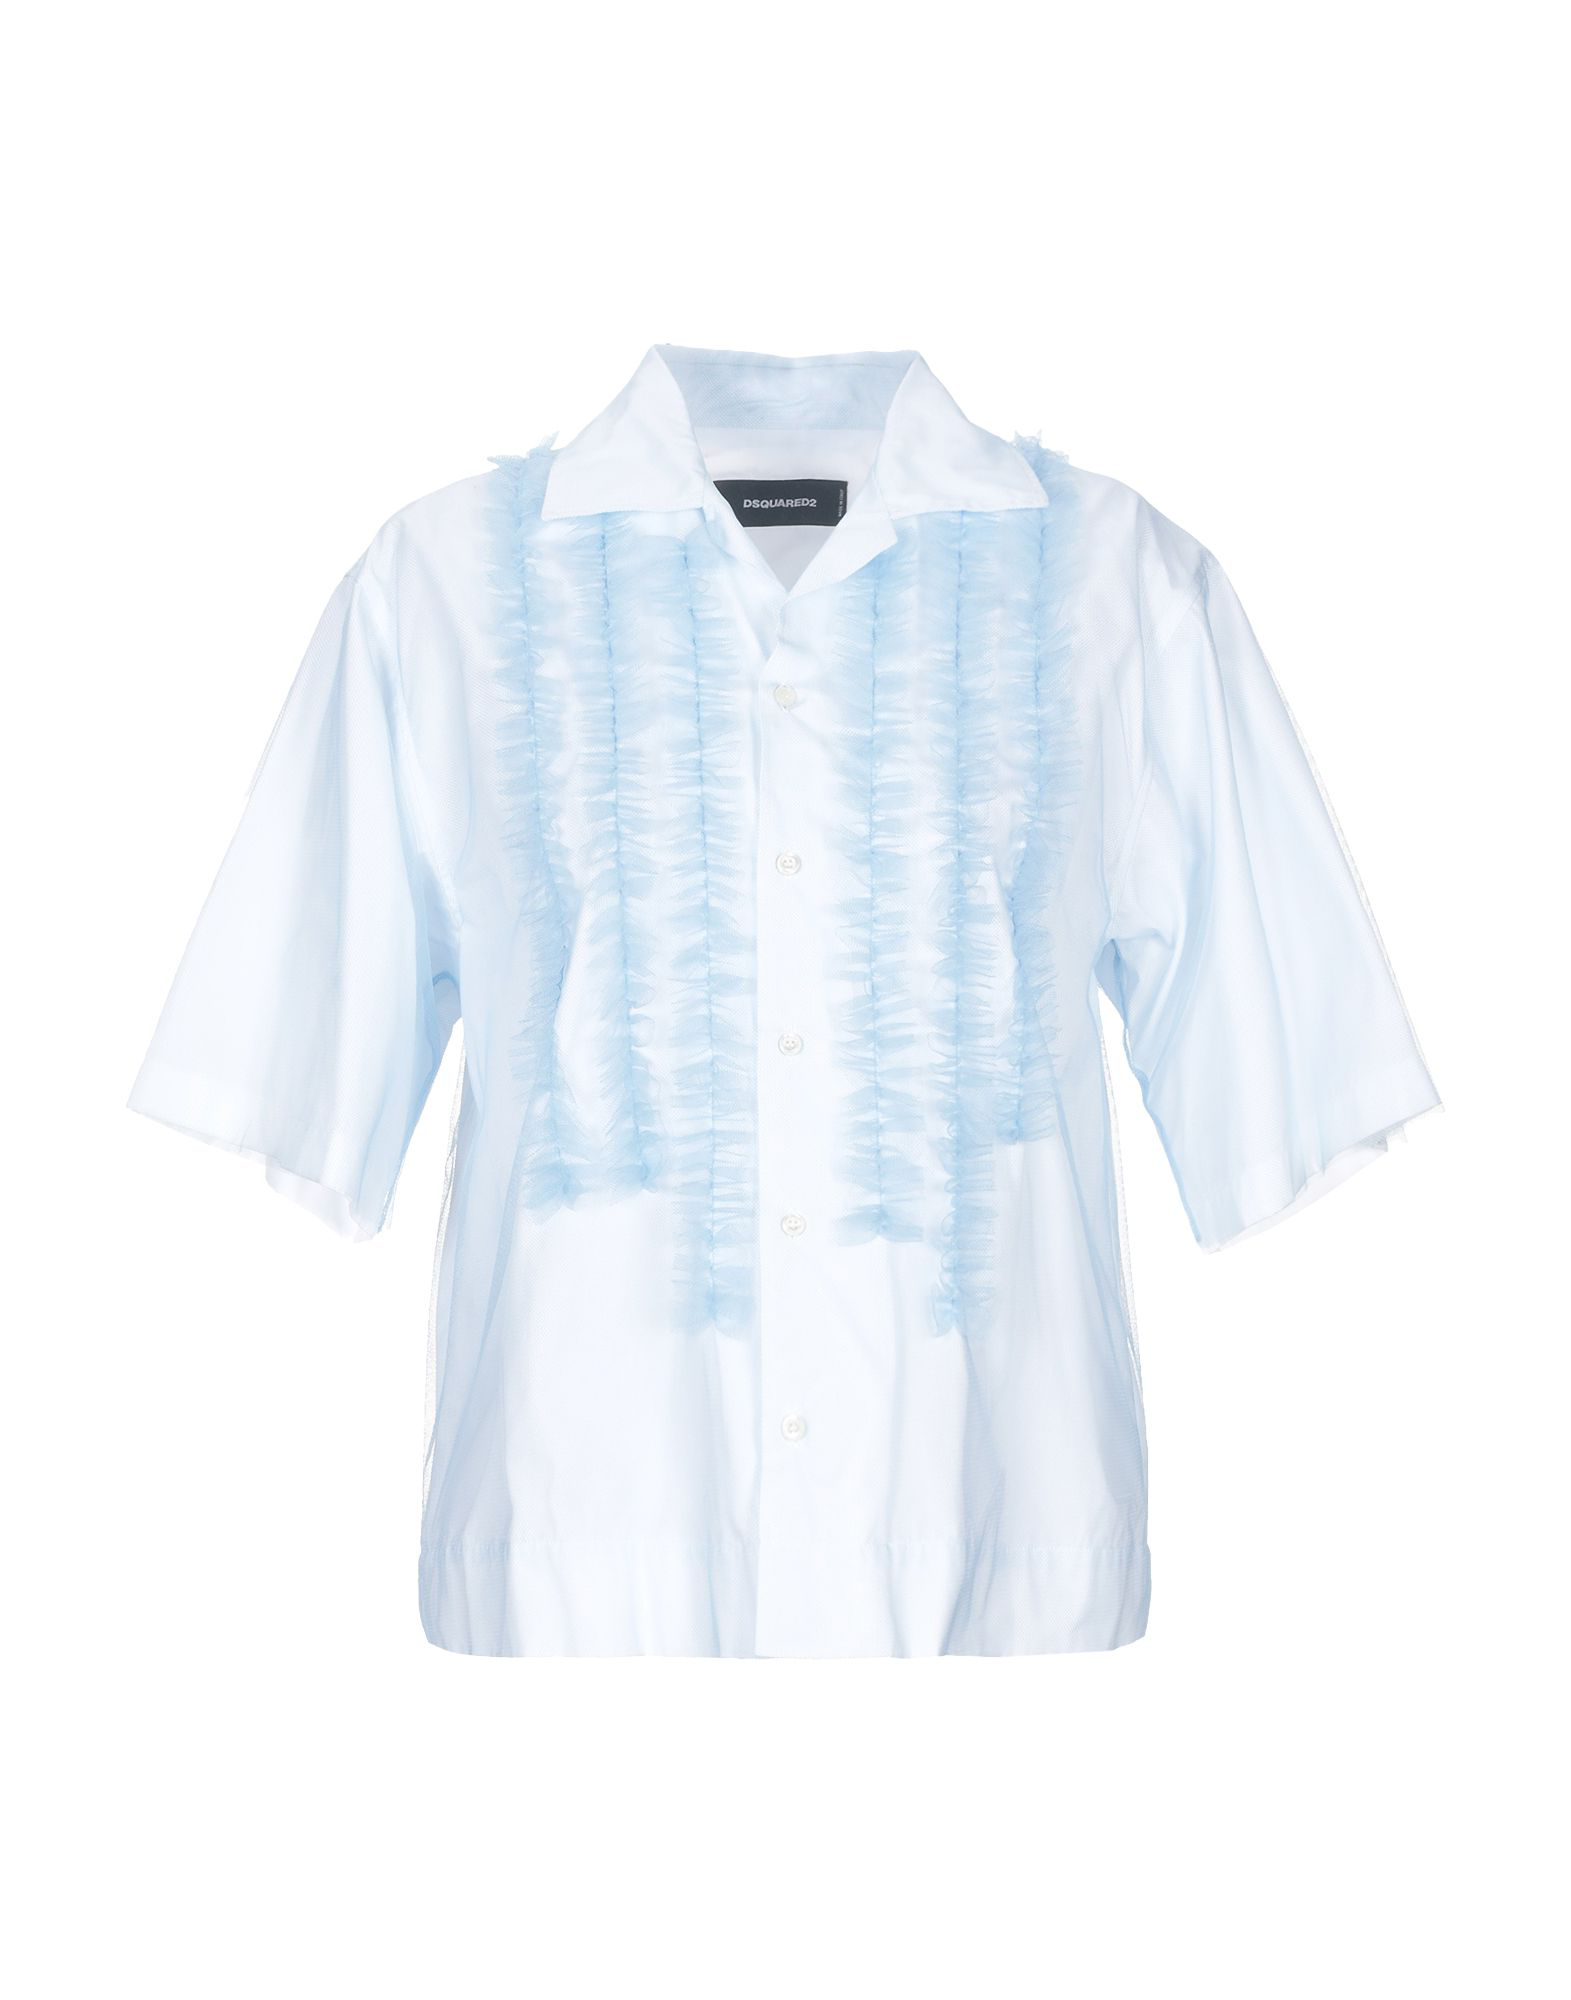 16bcb1410dddf Dsquared2 Shirts In Sky Blue